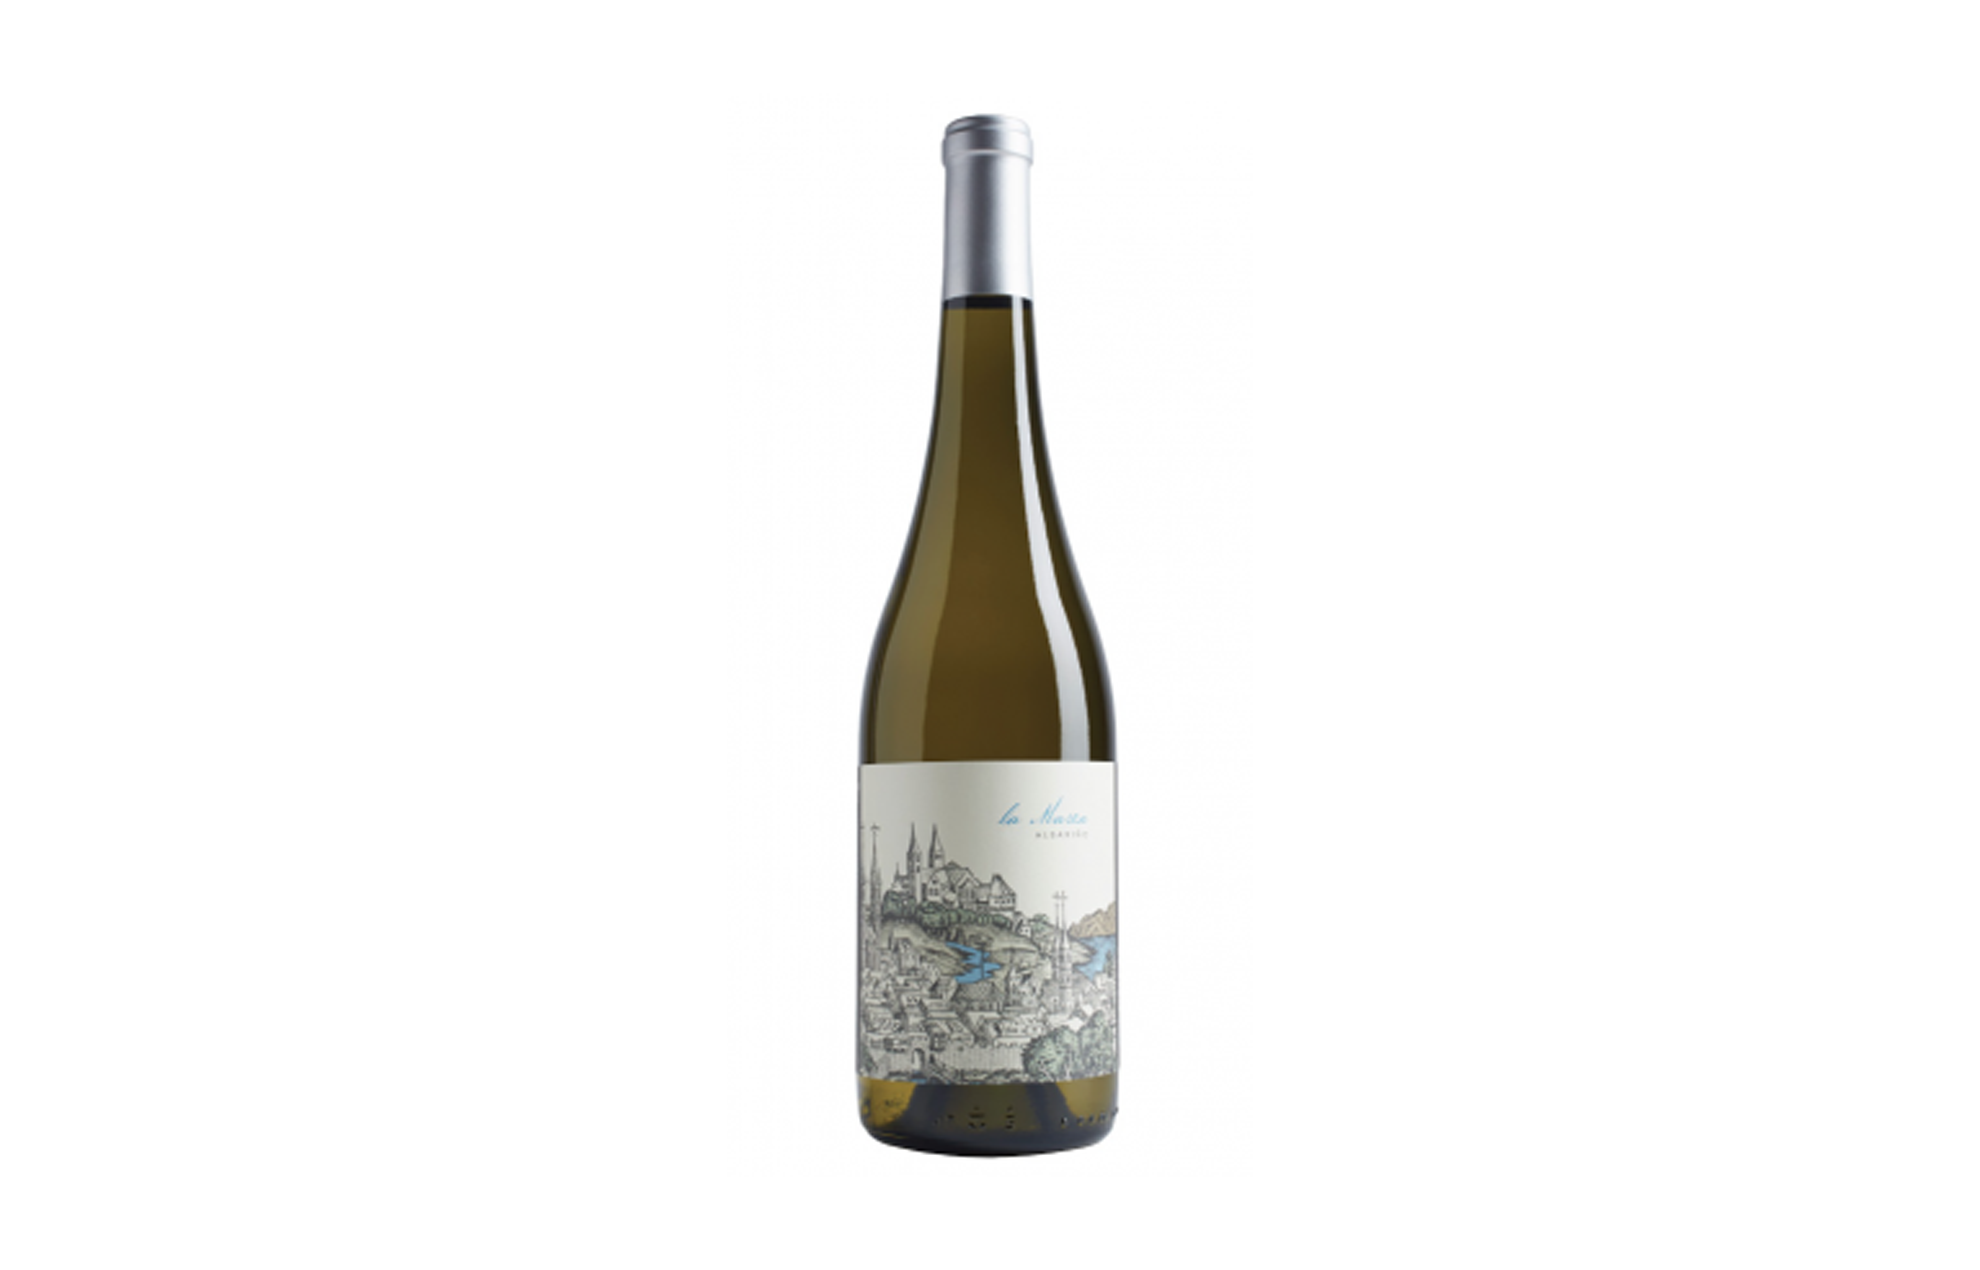 Bottle of La Marea 2017 Albariño, Monterey County, California